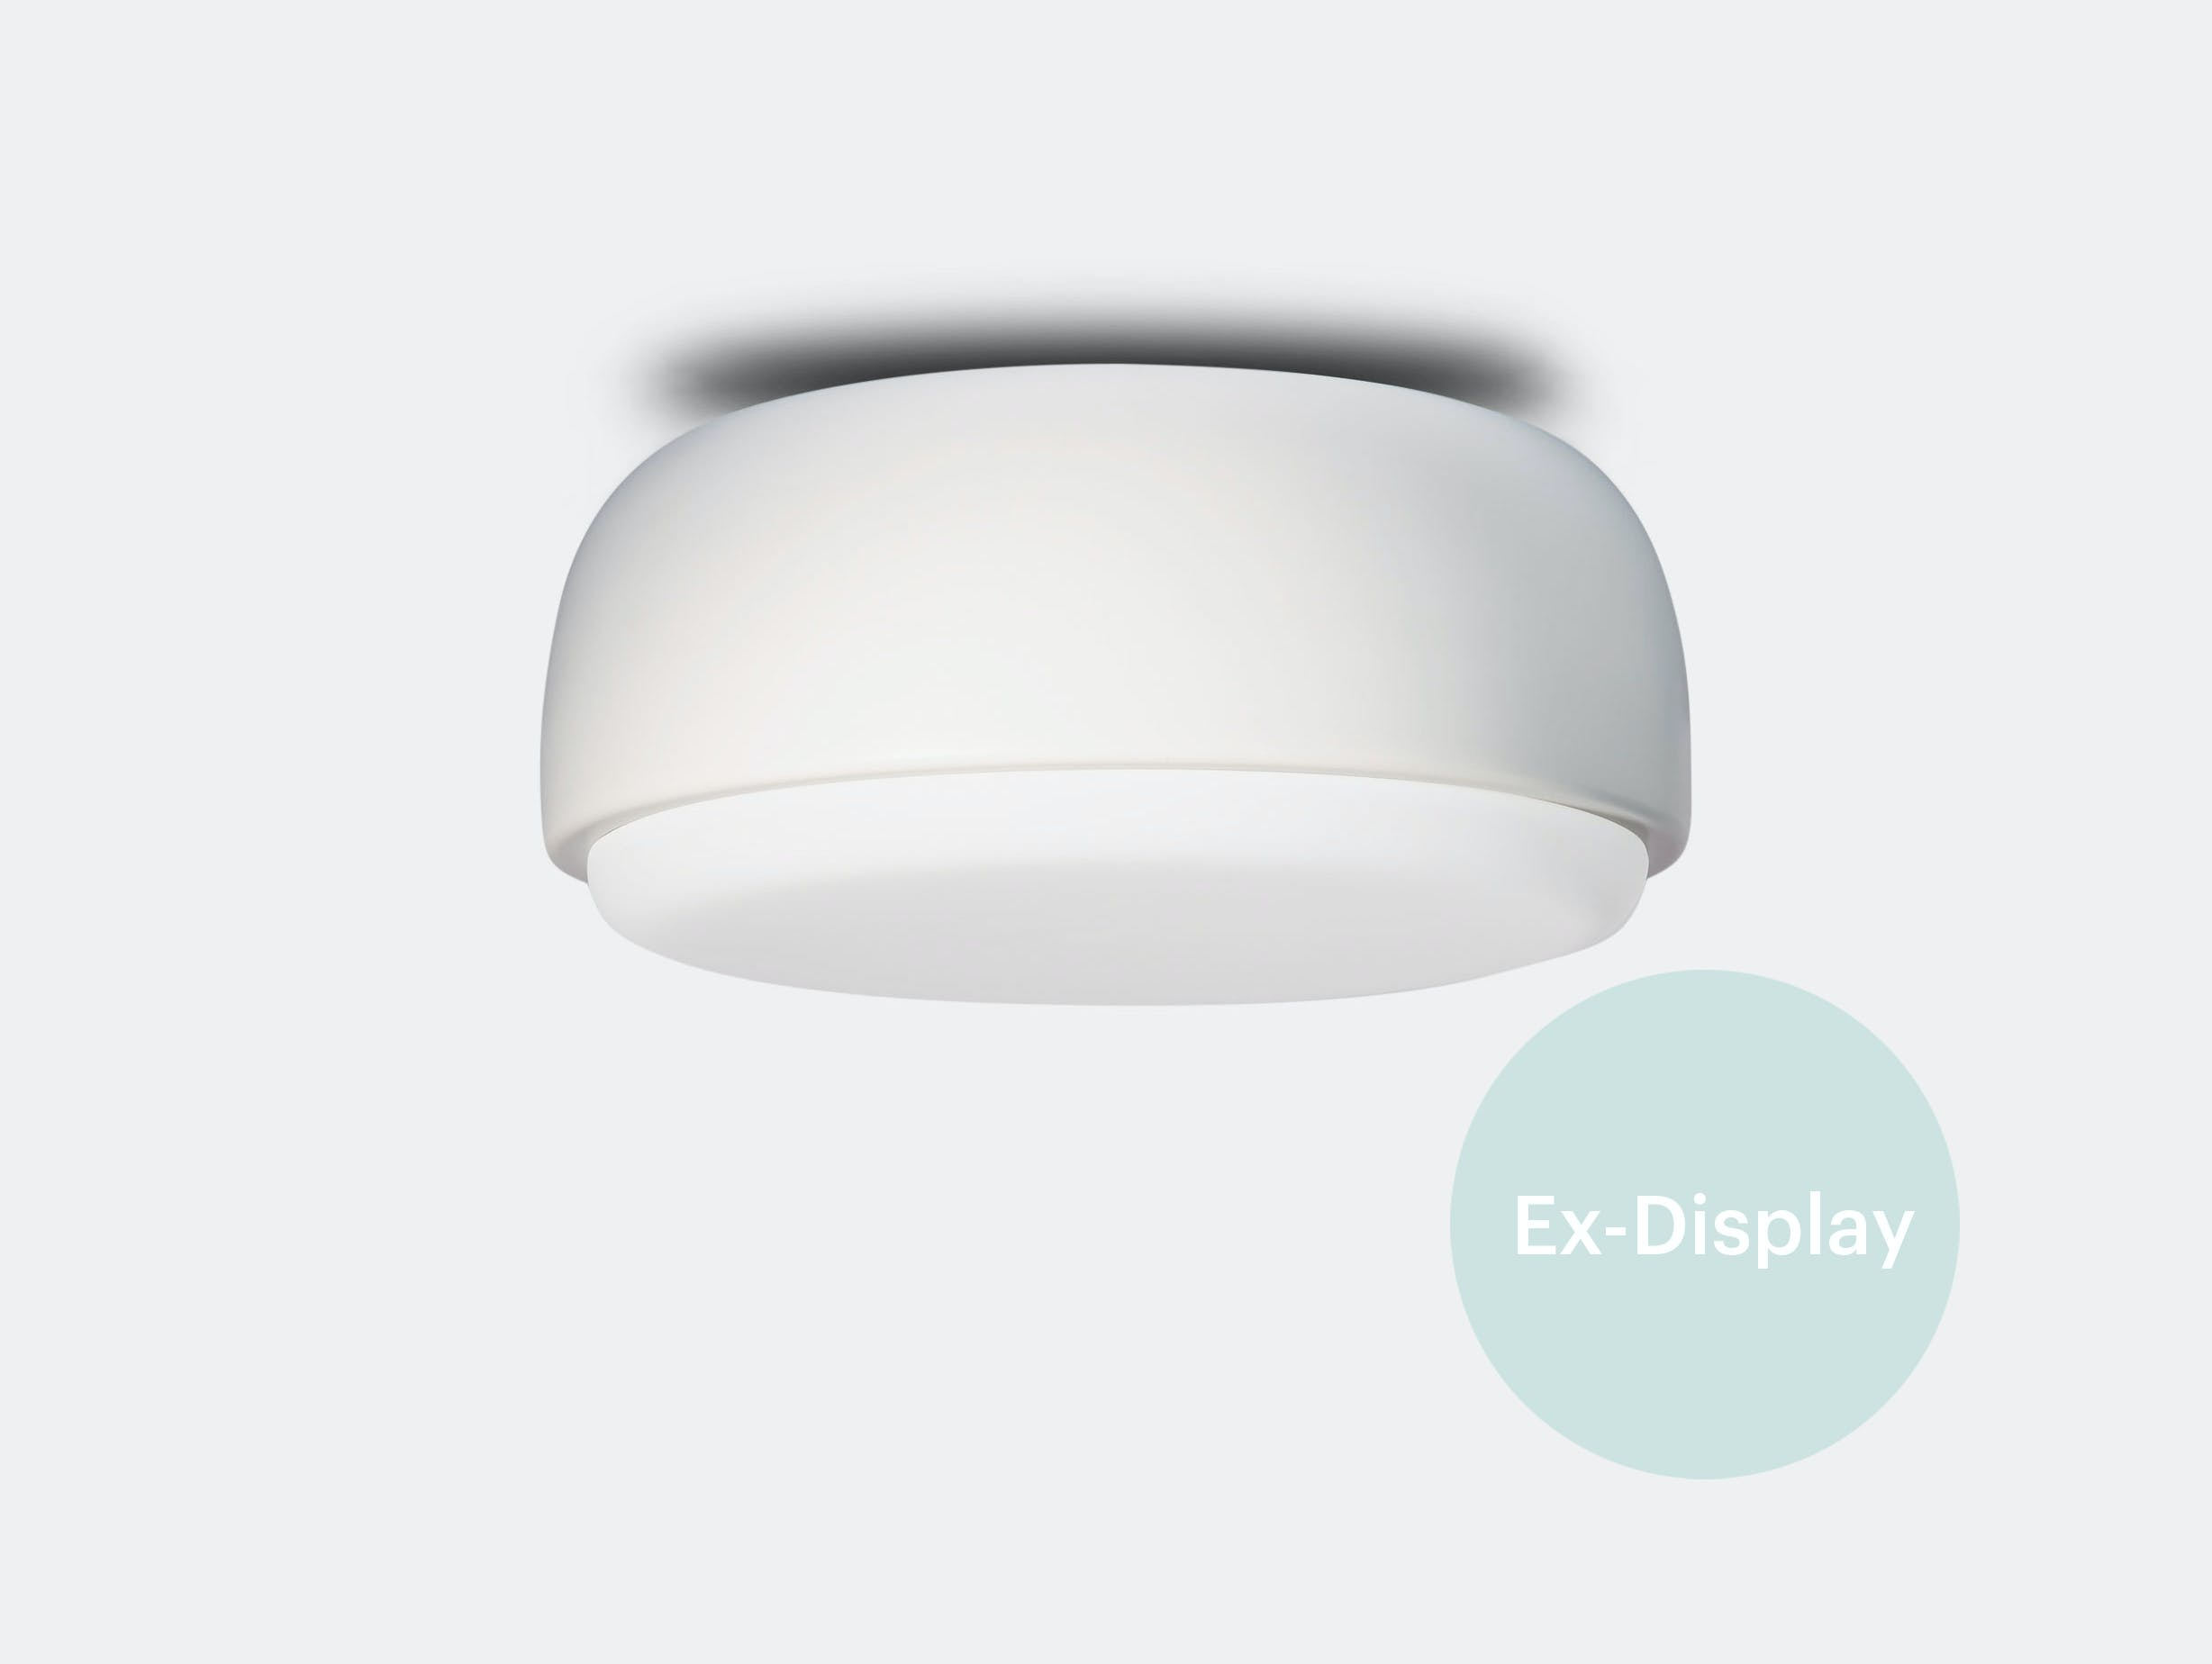 Xdp northern over me wall lamp 30 dk grey